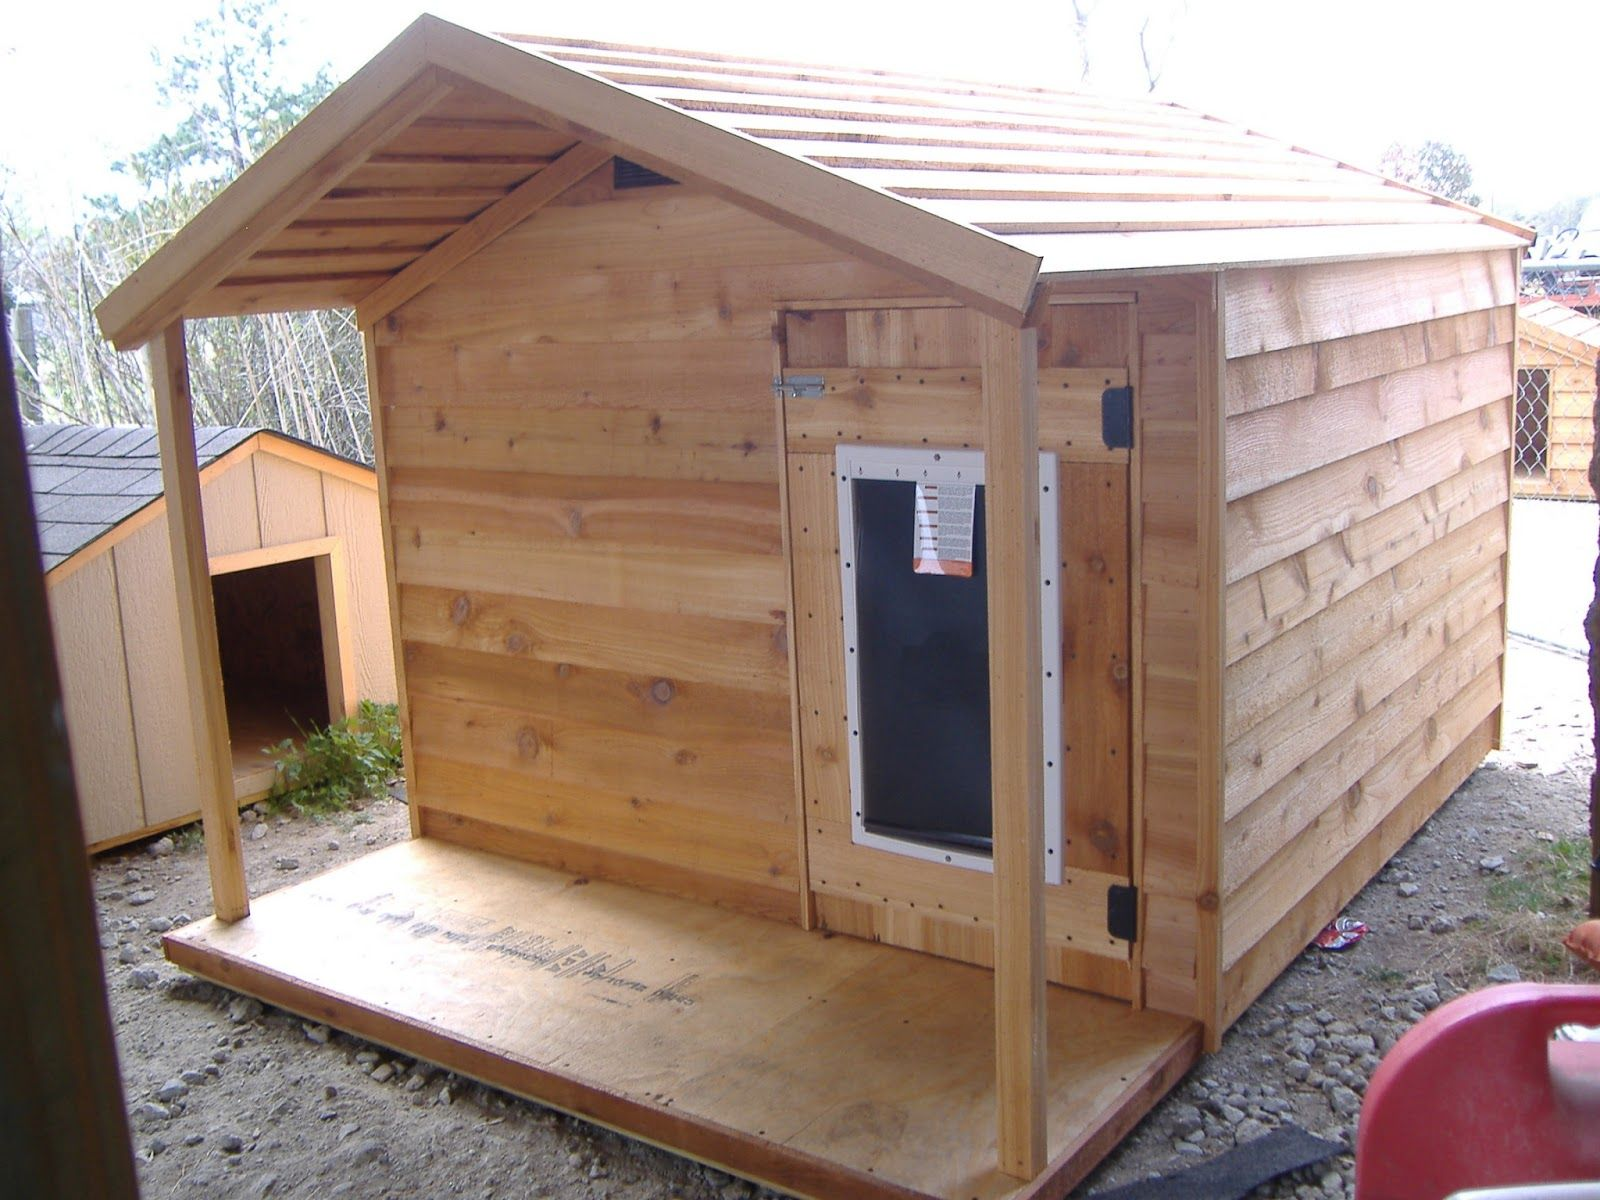 Best 25 insulated dog houses ideas on pinterest for Insulated dog houses for winter